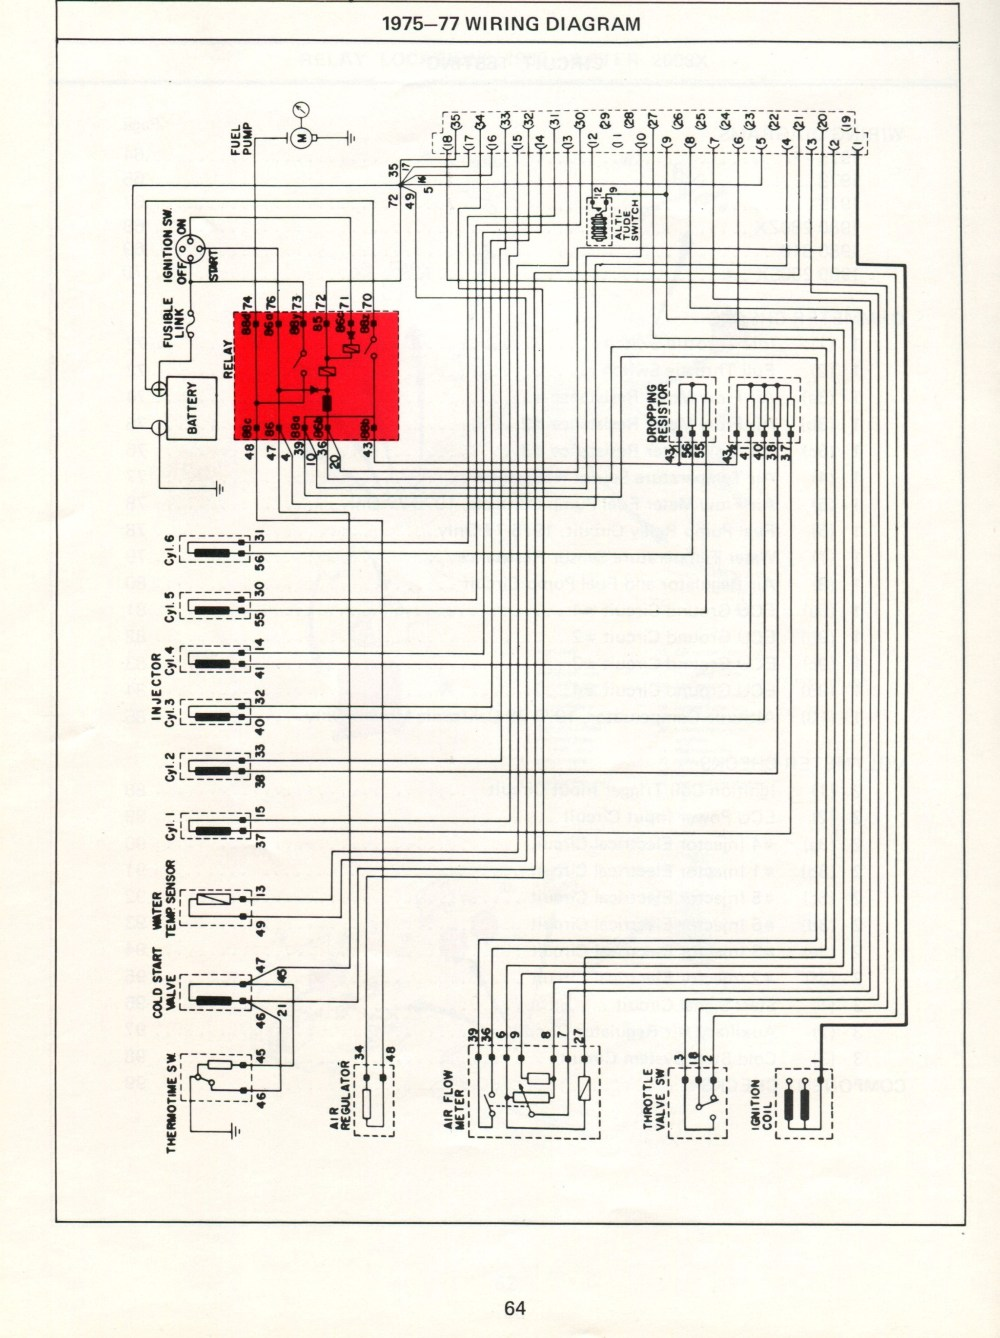 medium resolution of 75 280z wiring diagram wiring diagram75 280z wiring diagram